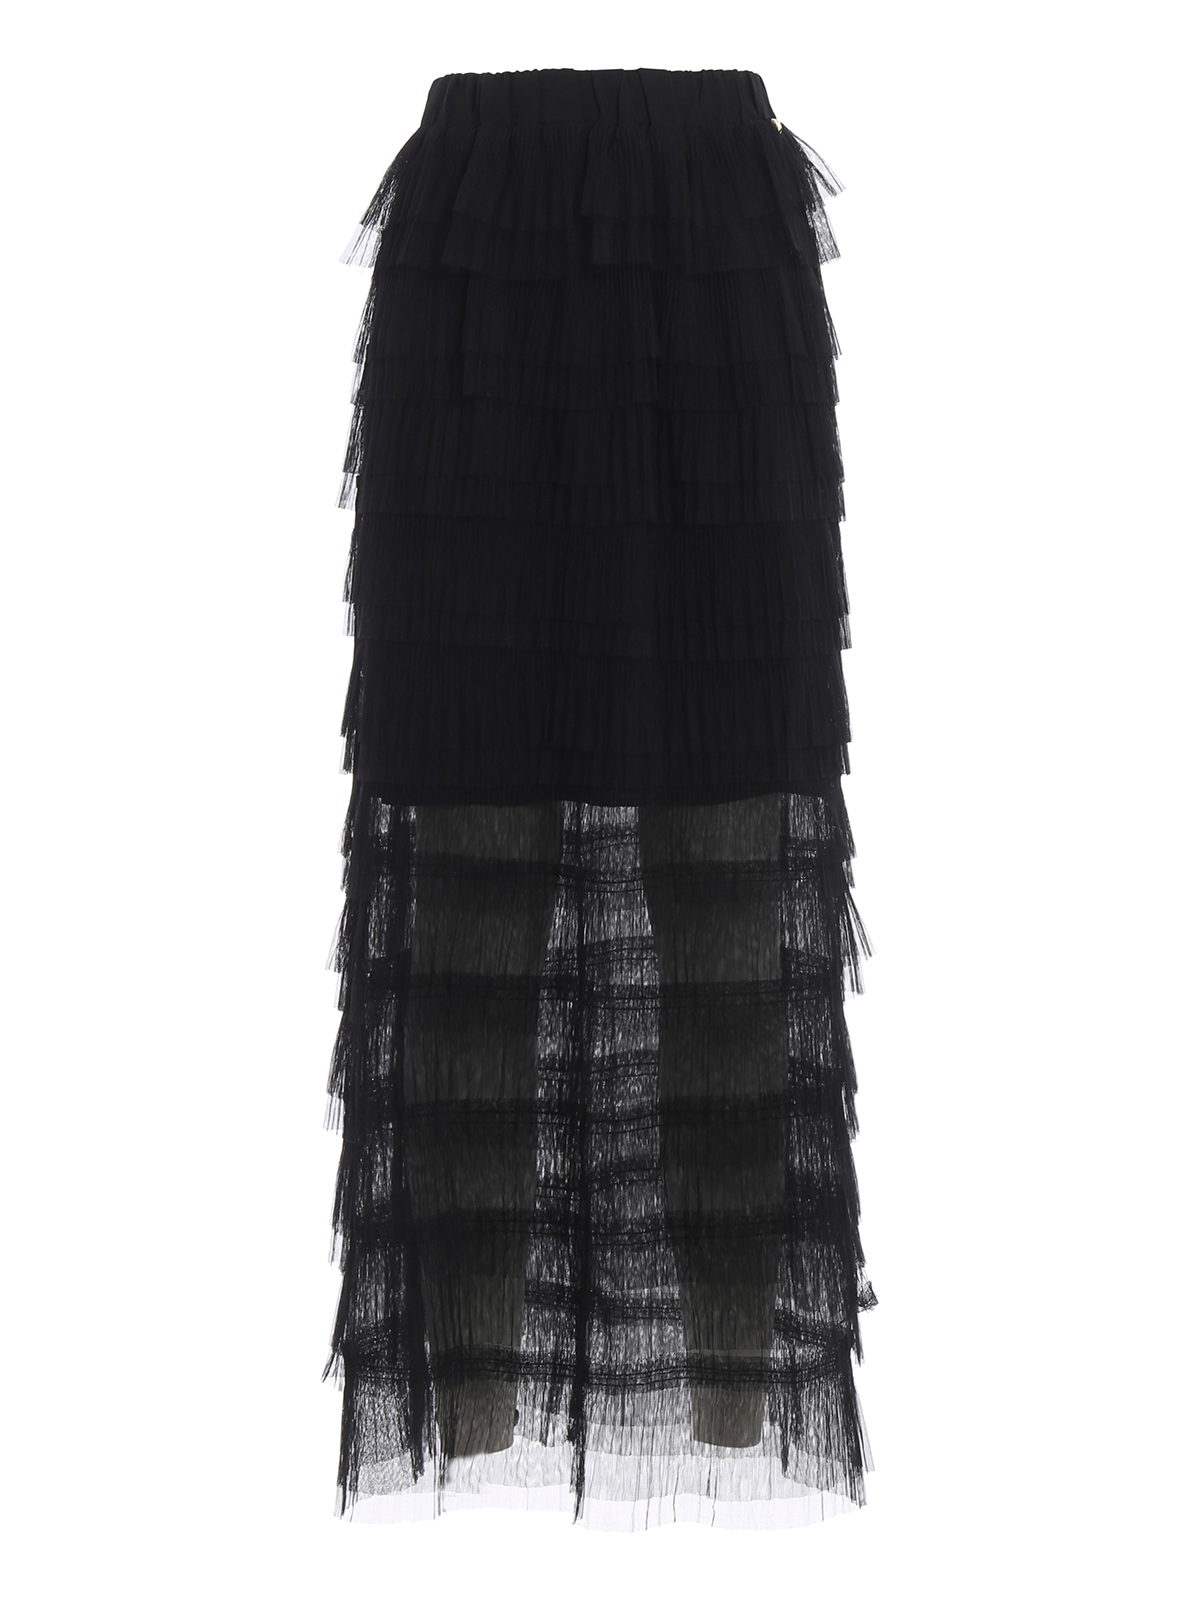 online store 99bf4 fa67d Twinset - Gonna lunga nera in tulle a balze - Gonne Lunghe ...